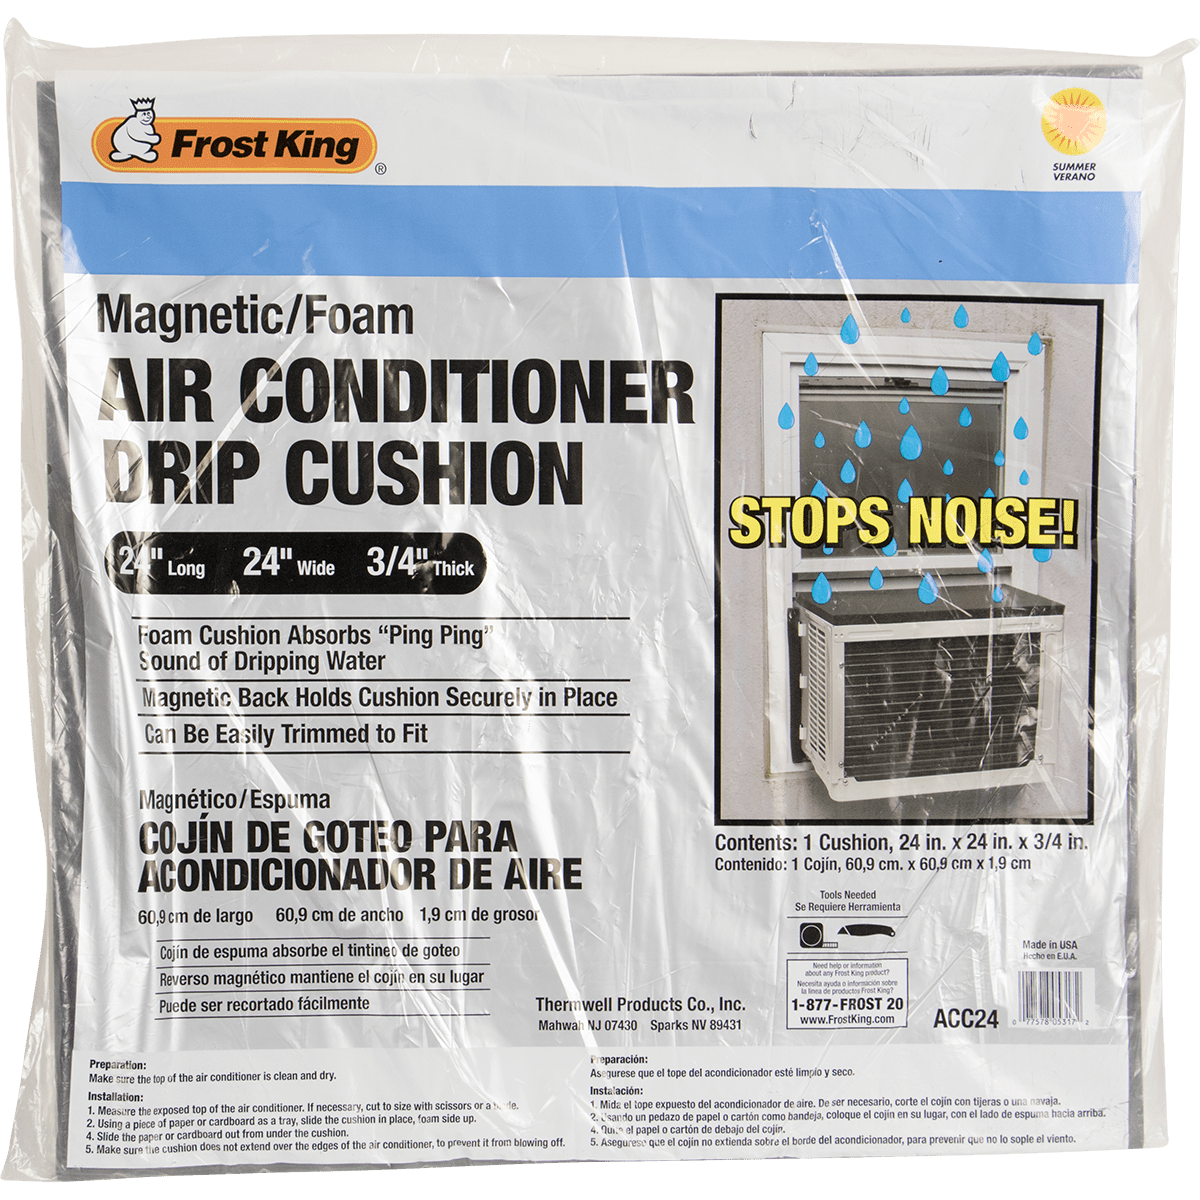 Frost King ACC24 Air Conditioner Drip Cushion fk5682